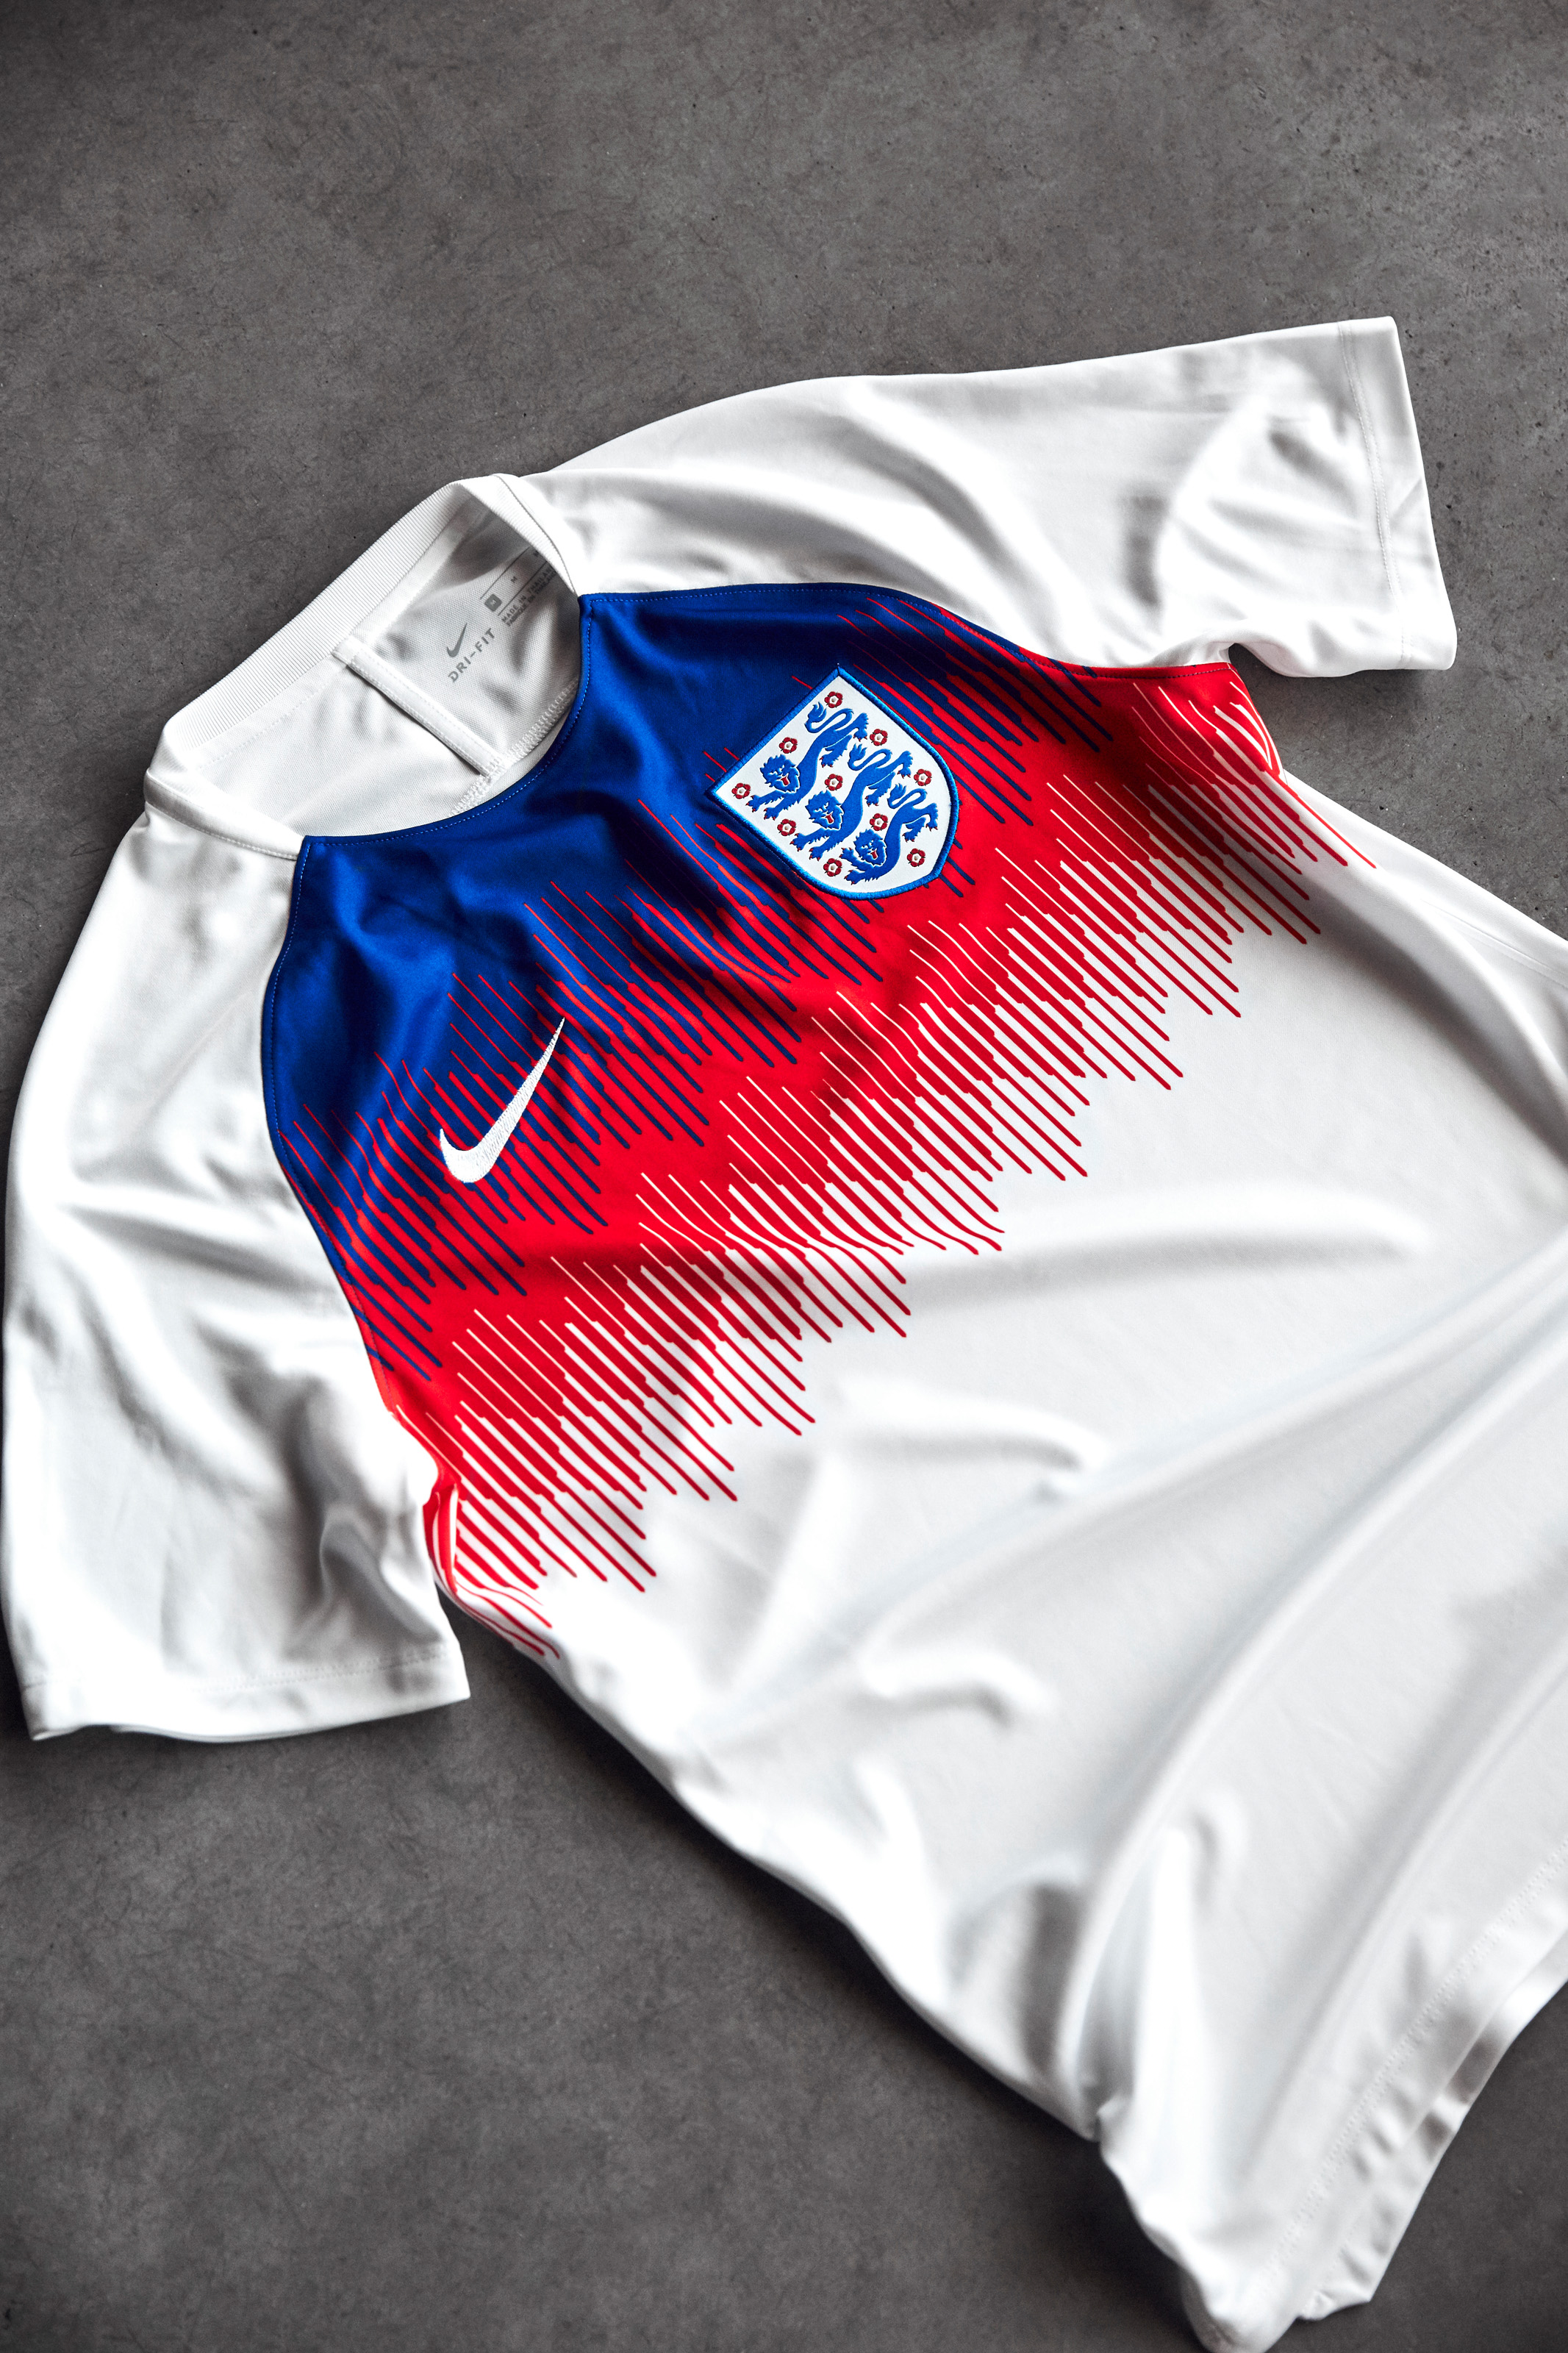 Nike-News-Football-Soccer-England-National-Team-Kit-8_77379.JPG